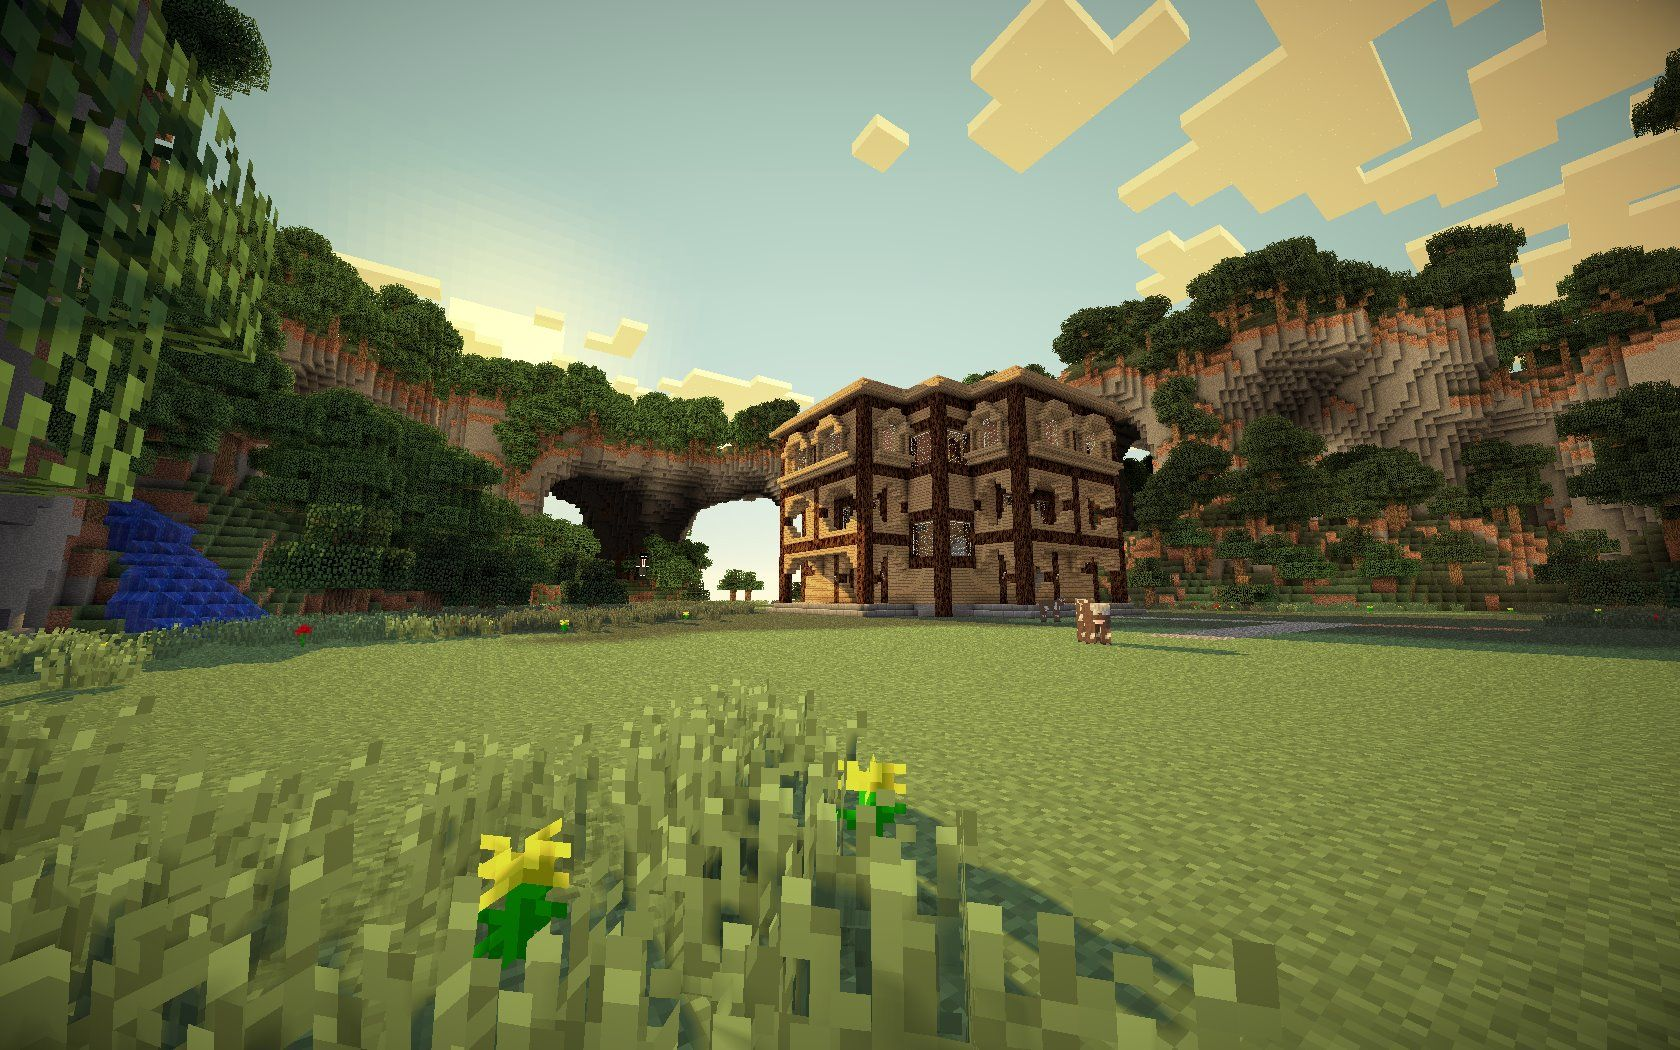 Download Wallpaper Minecraft Scenery - 0f82a007ad714d0ba64fd2d7e8302a9b  Best Photo Reference_174313.jpg